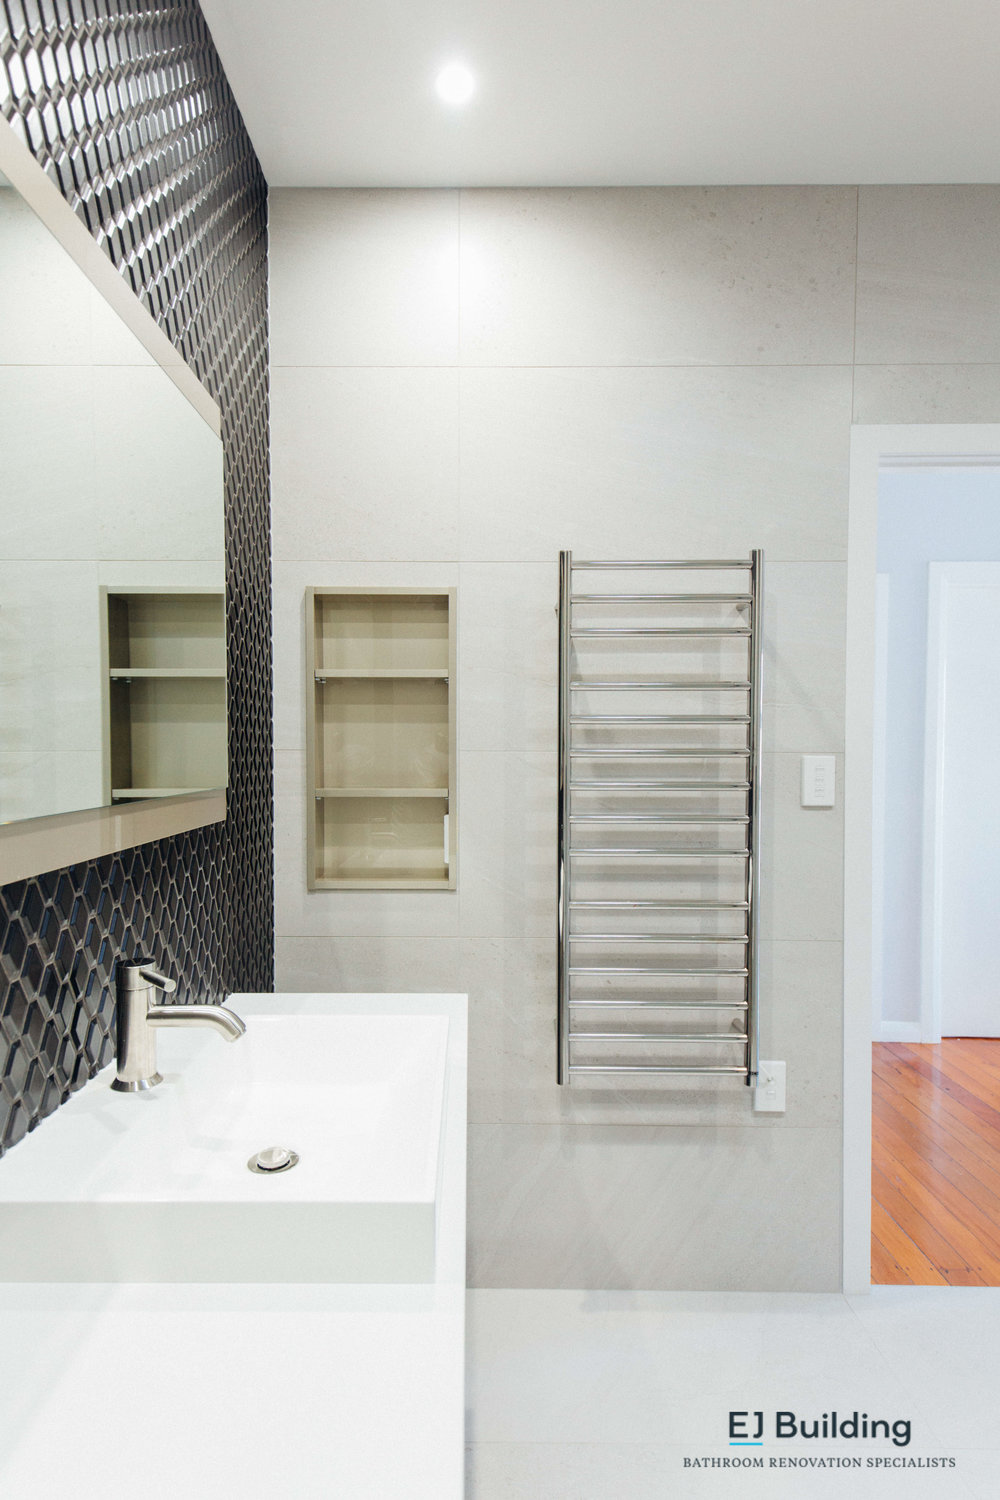 Ladder towel rail and recessed shelf in renovated bathroom.